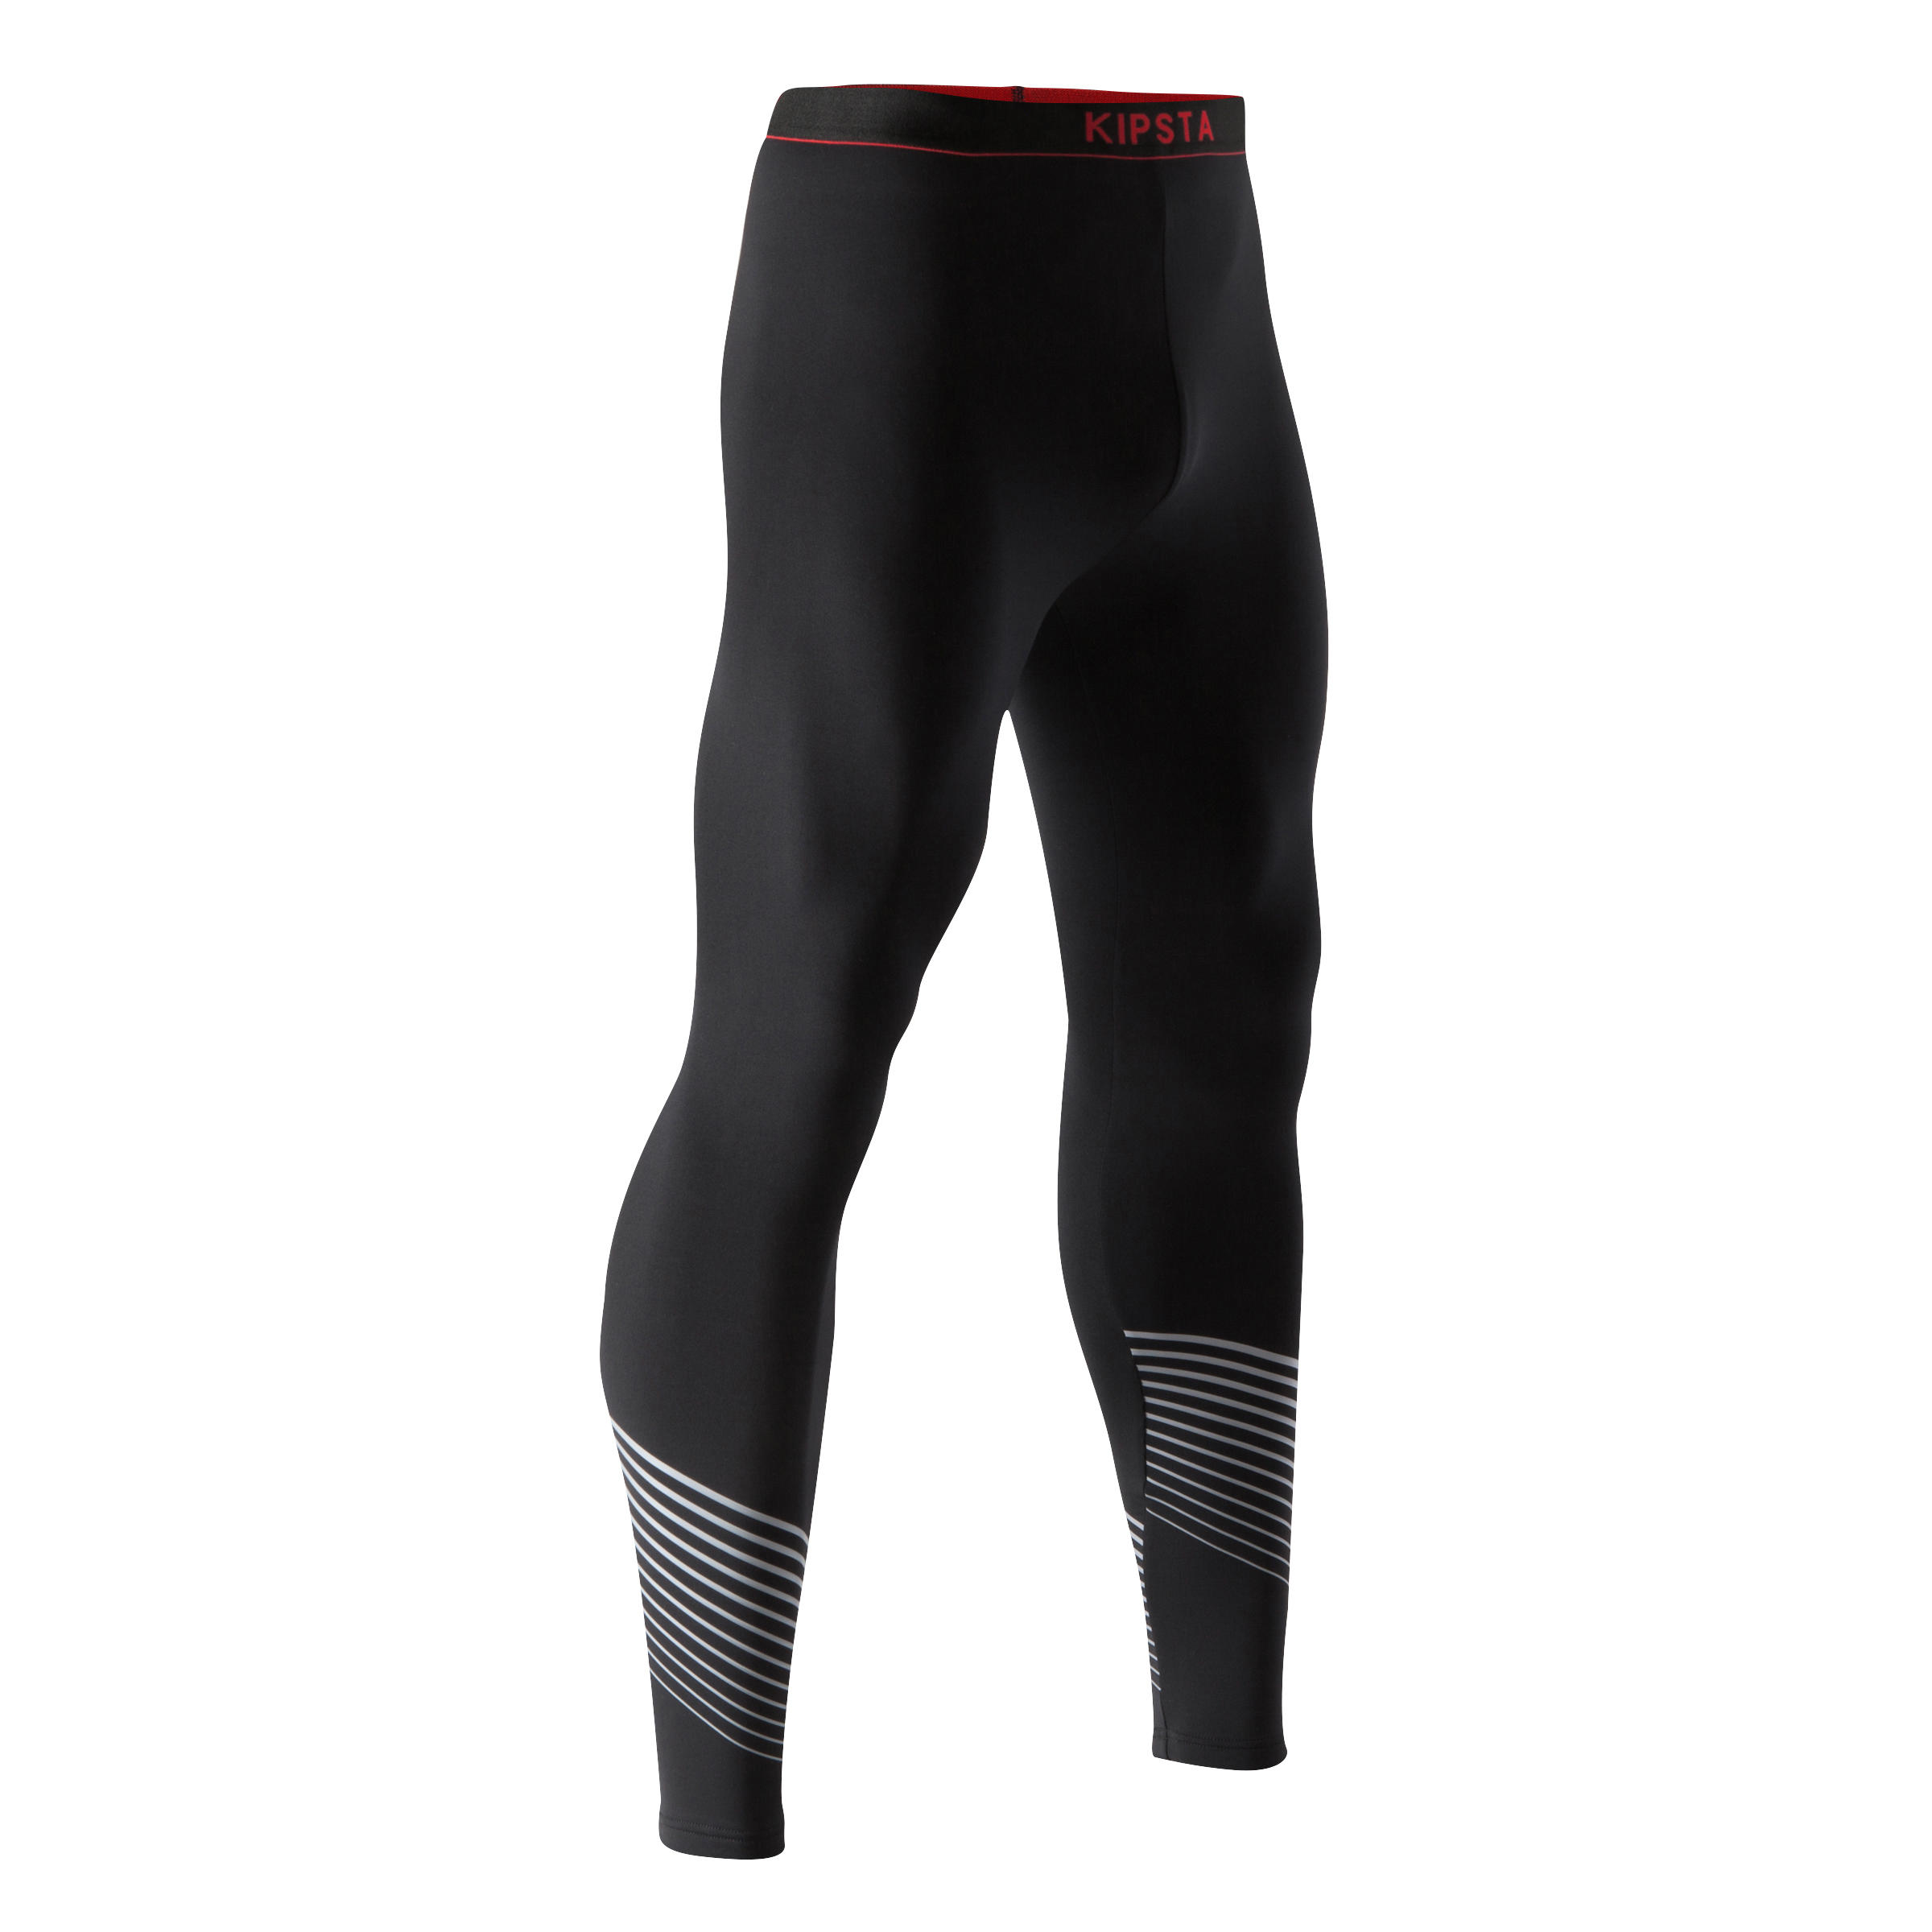 Keepdry 900 Adult Warm & Breathable Tights - Black with Red Waistband